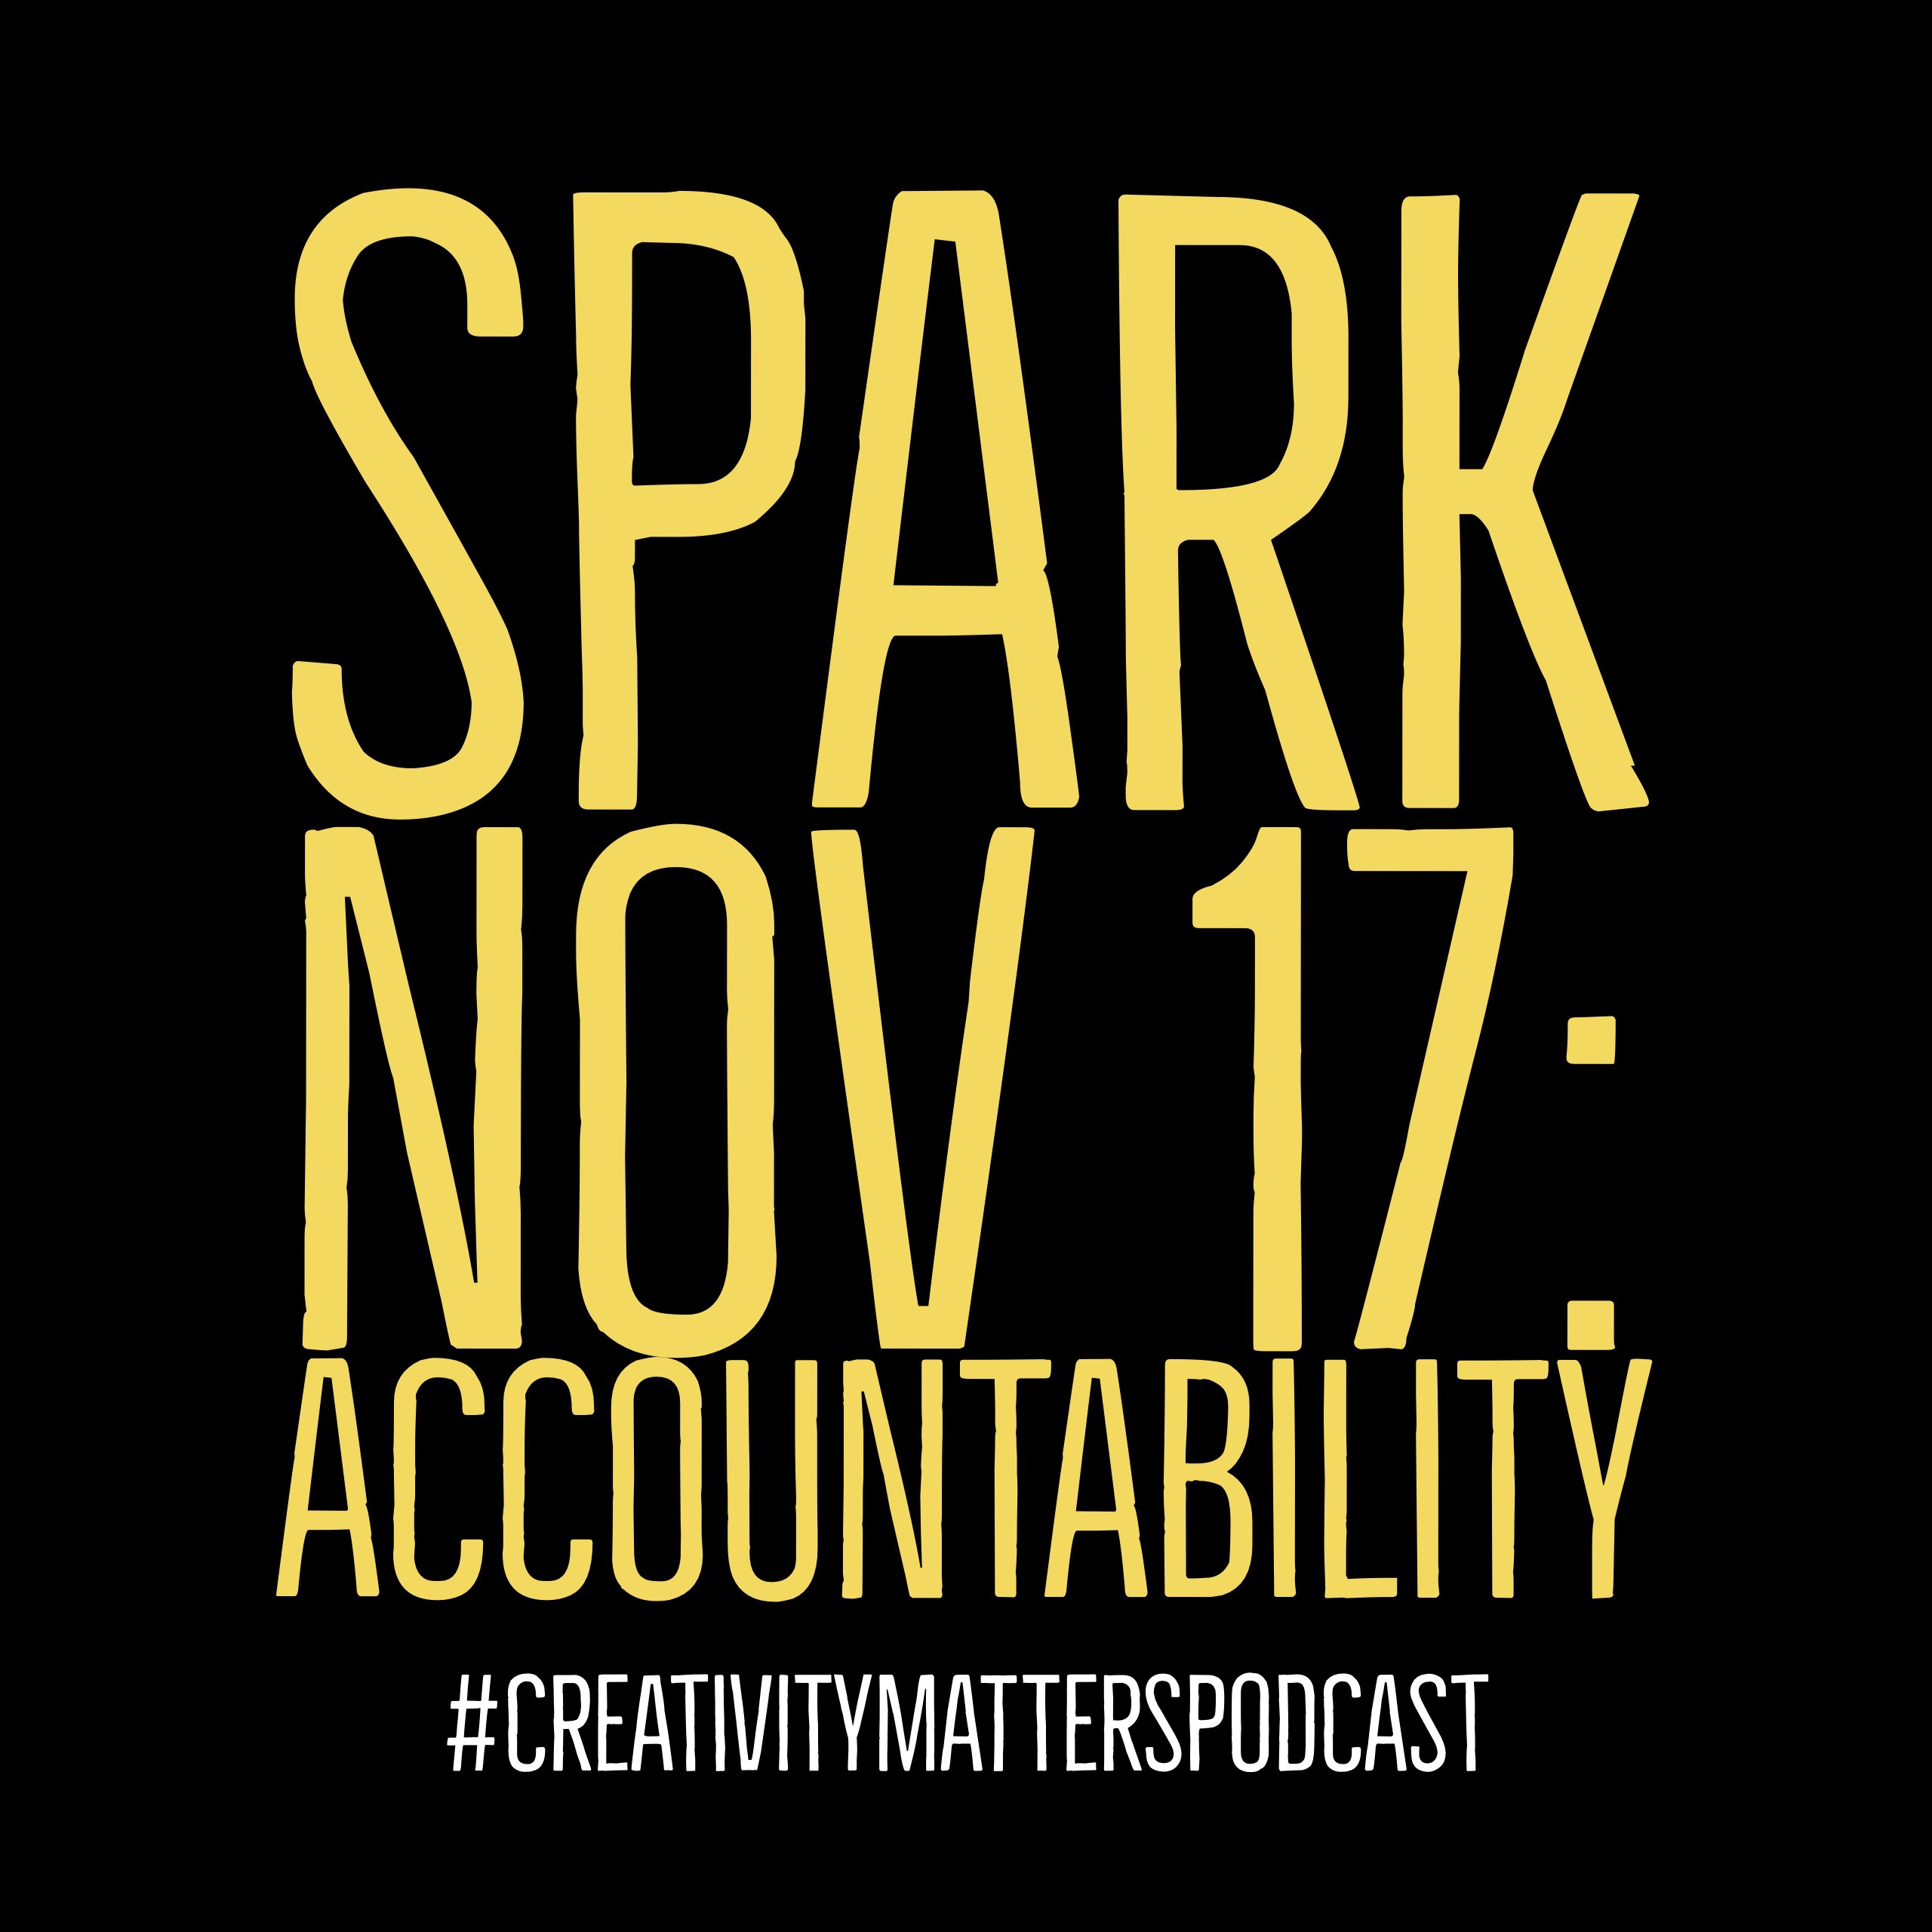 Spark Nov 17: Accountability